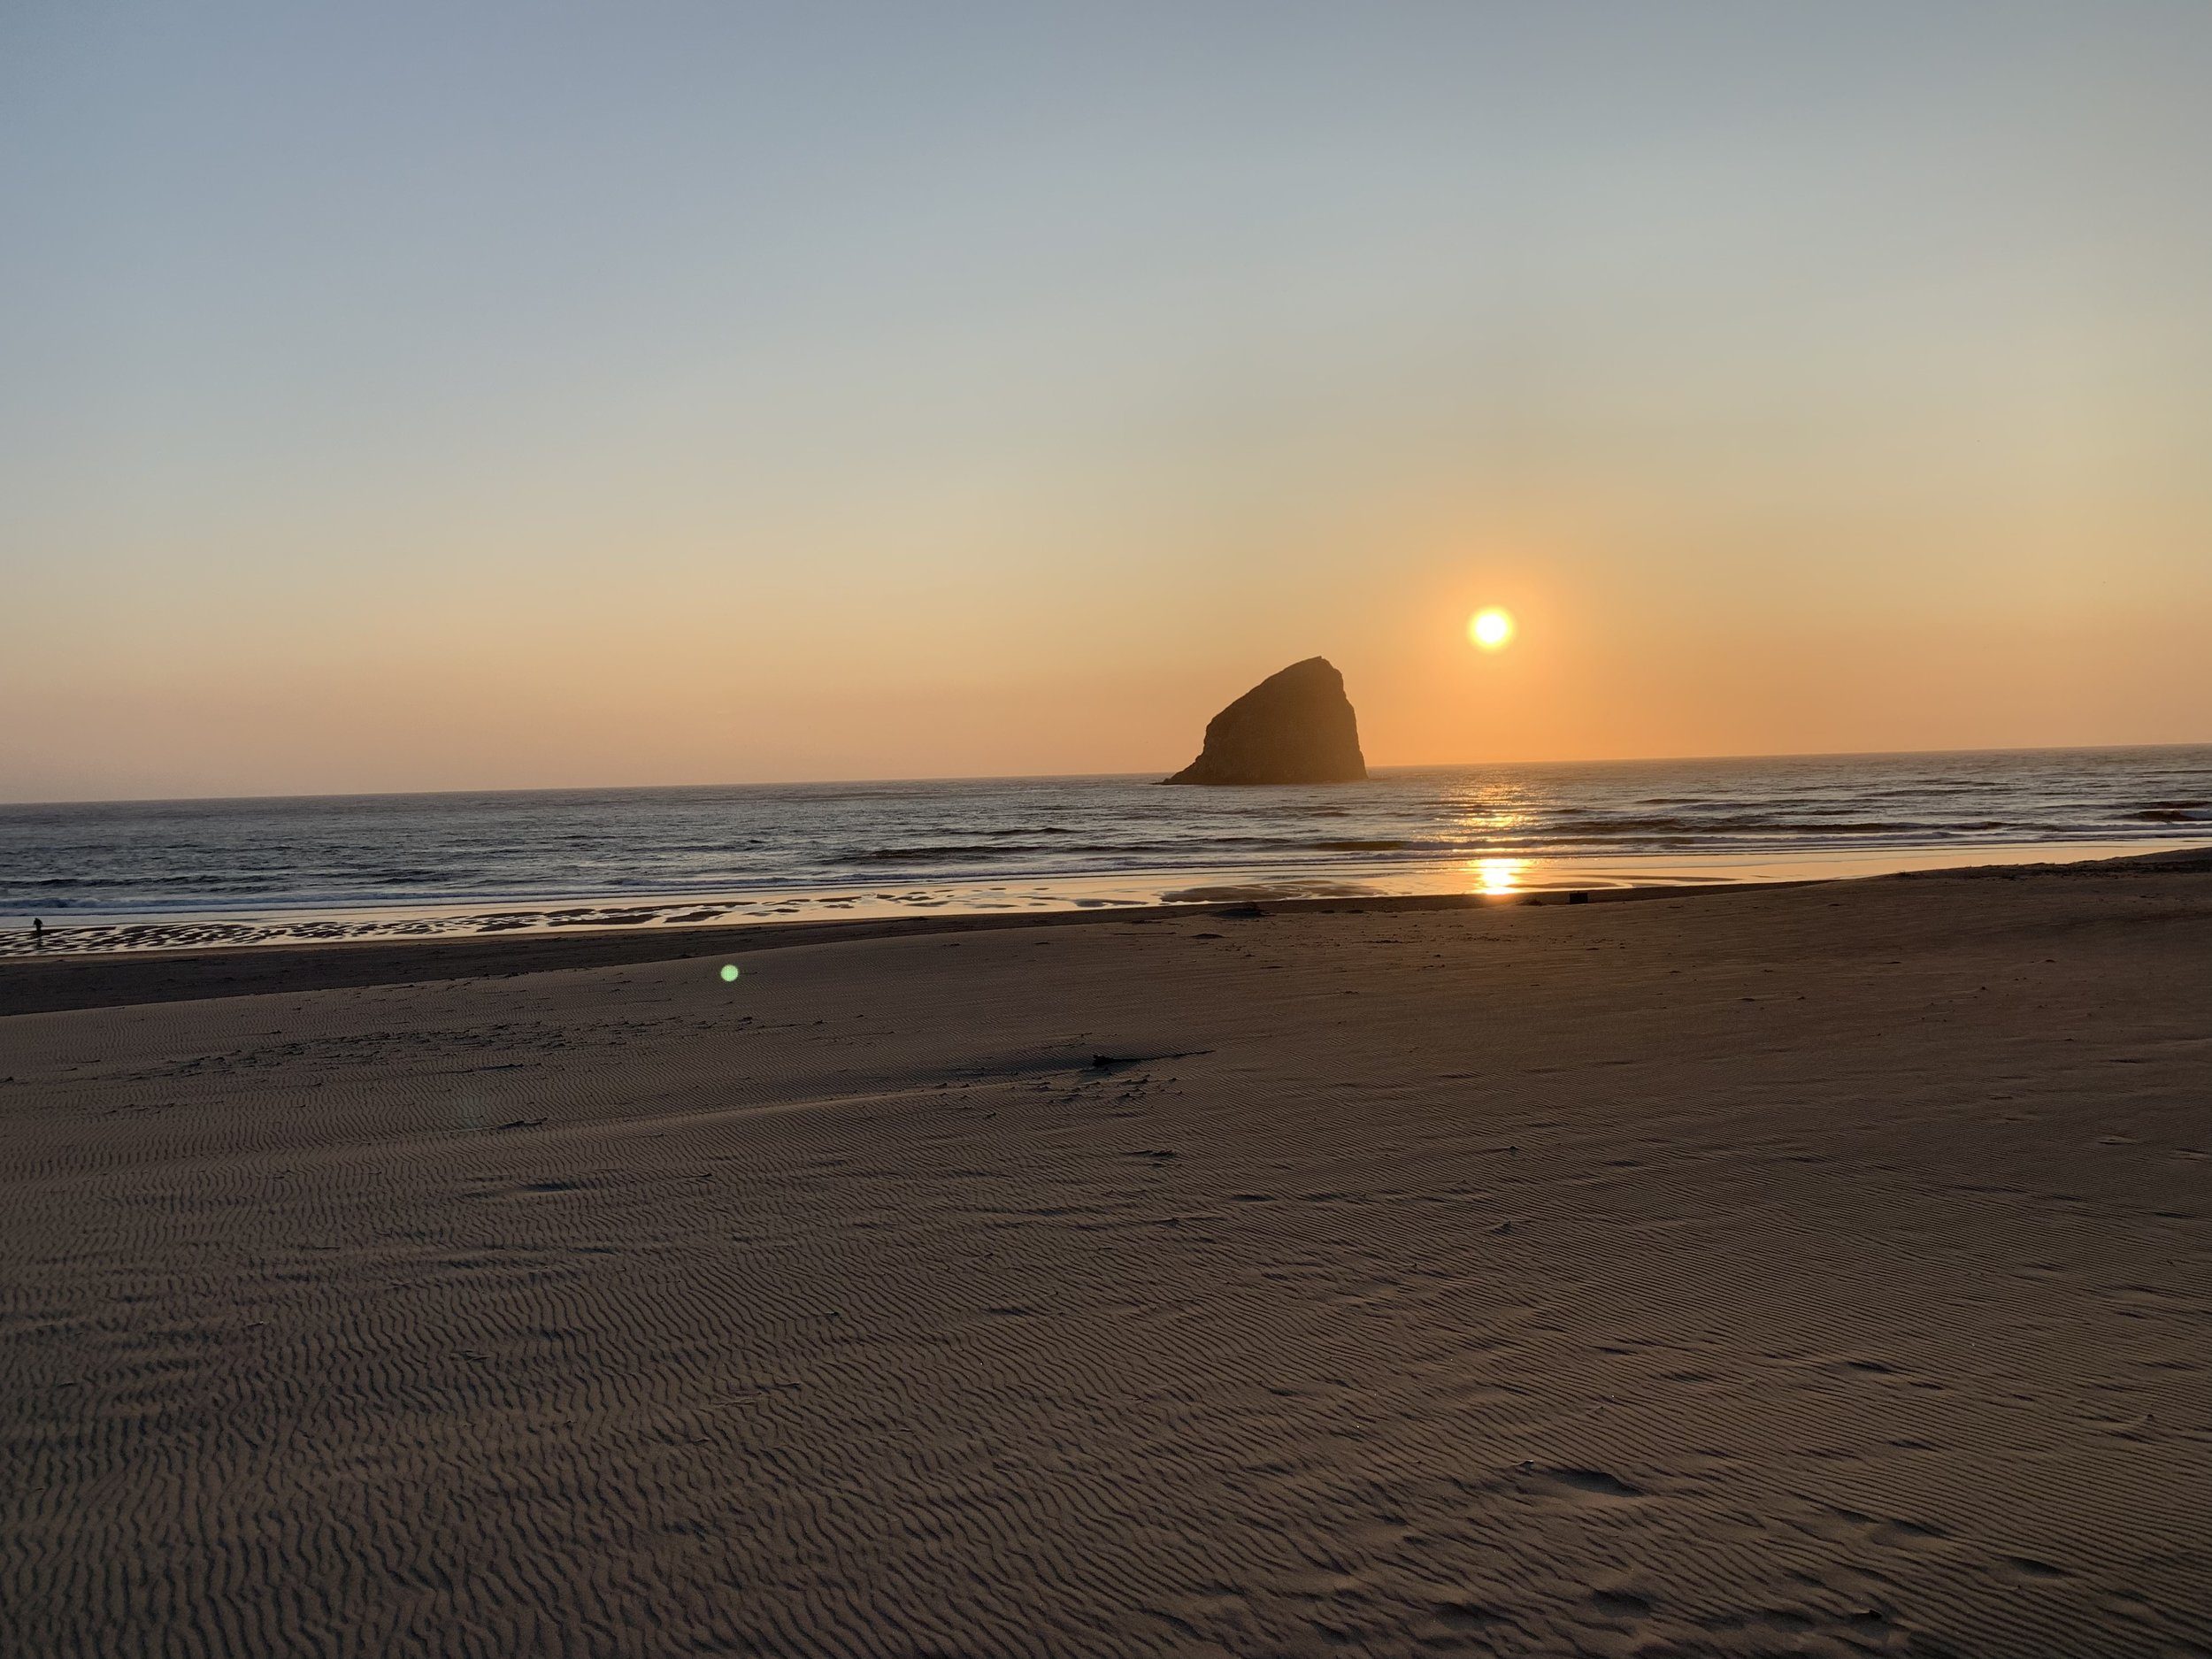 The sunsets along any coast can be spectacular. But when it's in a place you've grown up going to, after a great dinner and several amazing waves, well, that's a topper. Image Courtesy: Dan Meyers